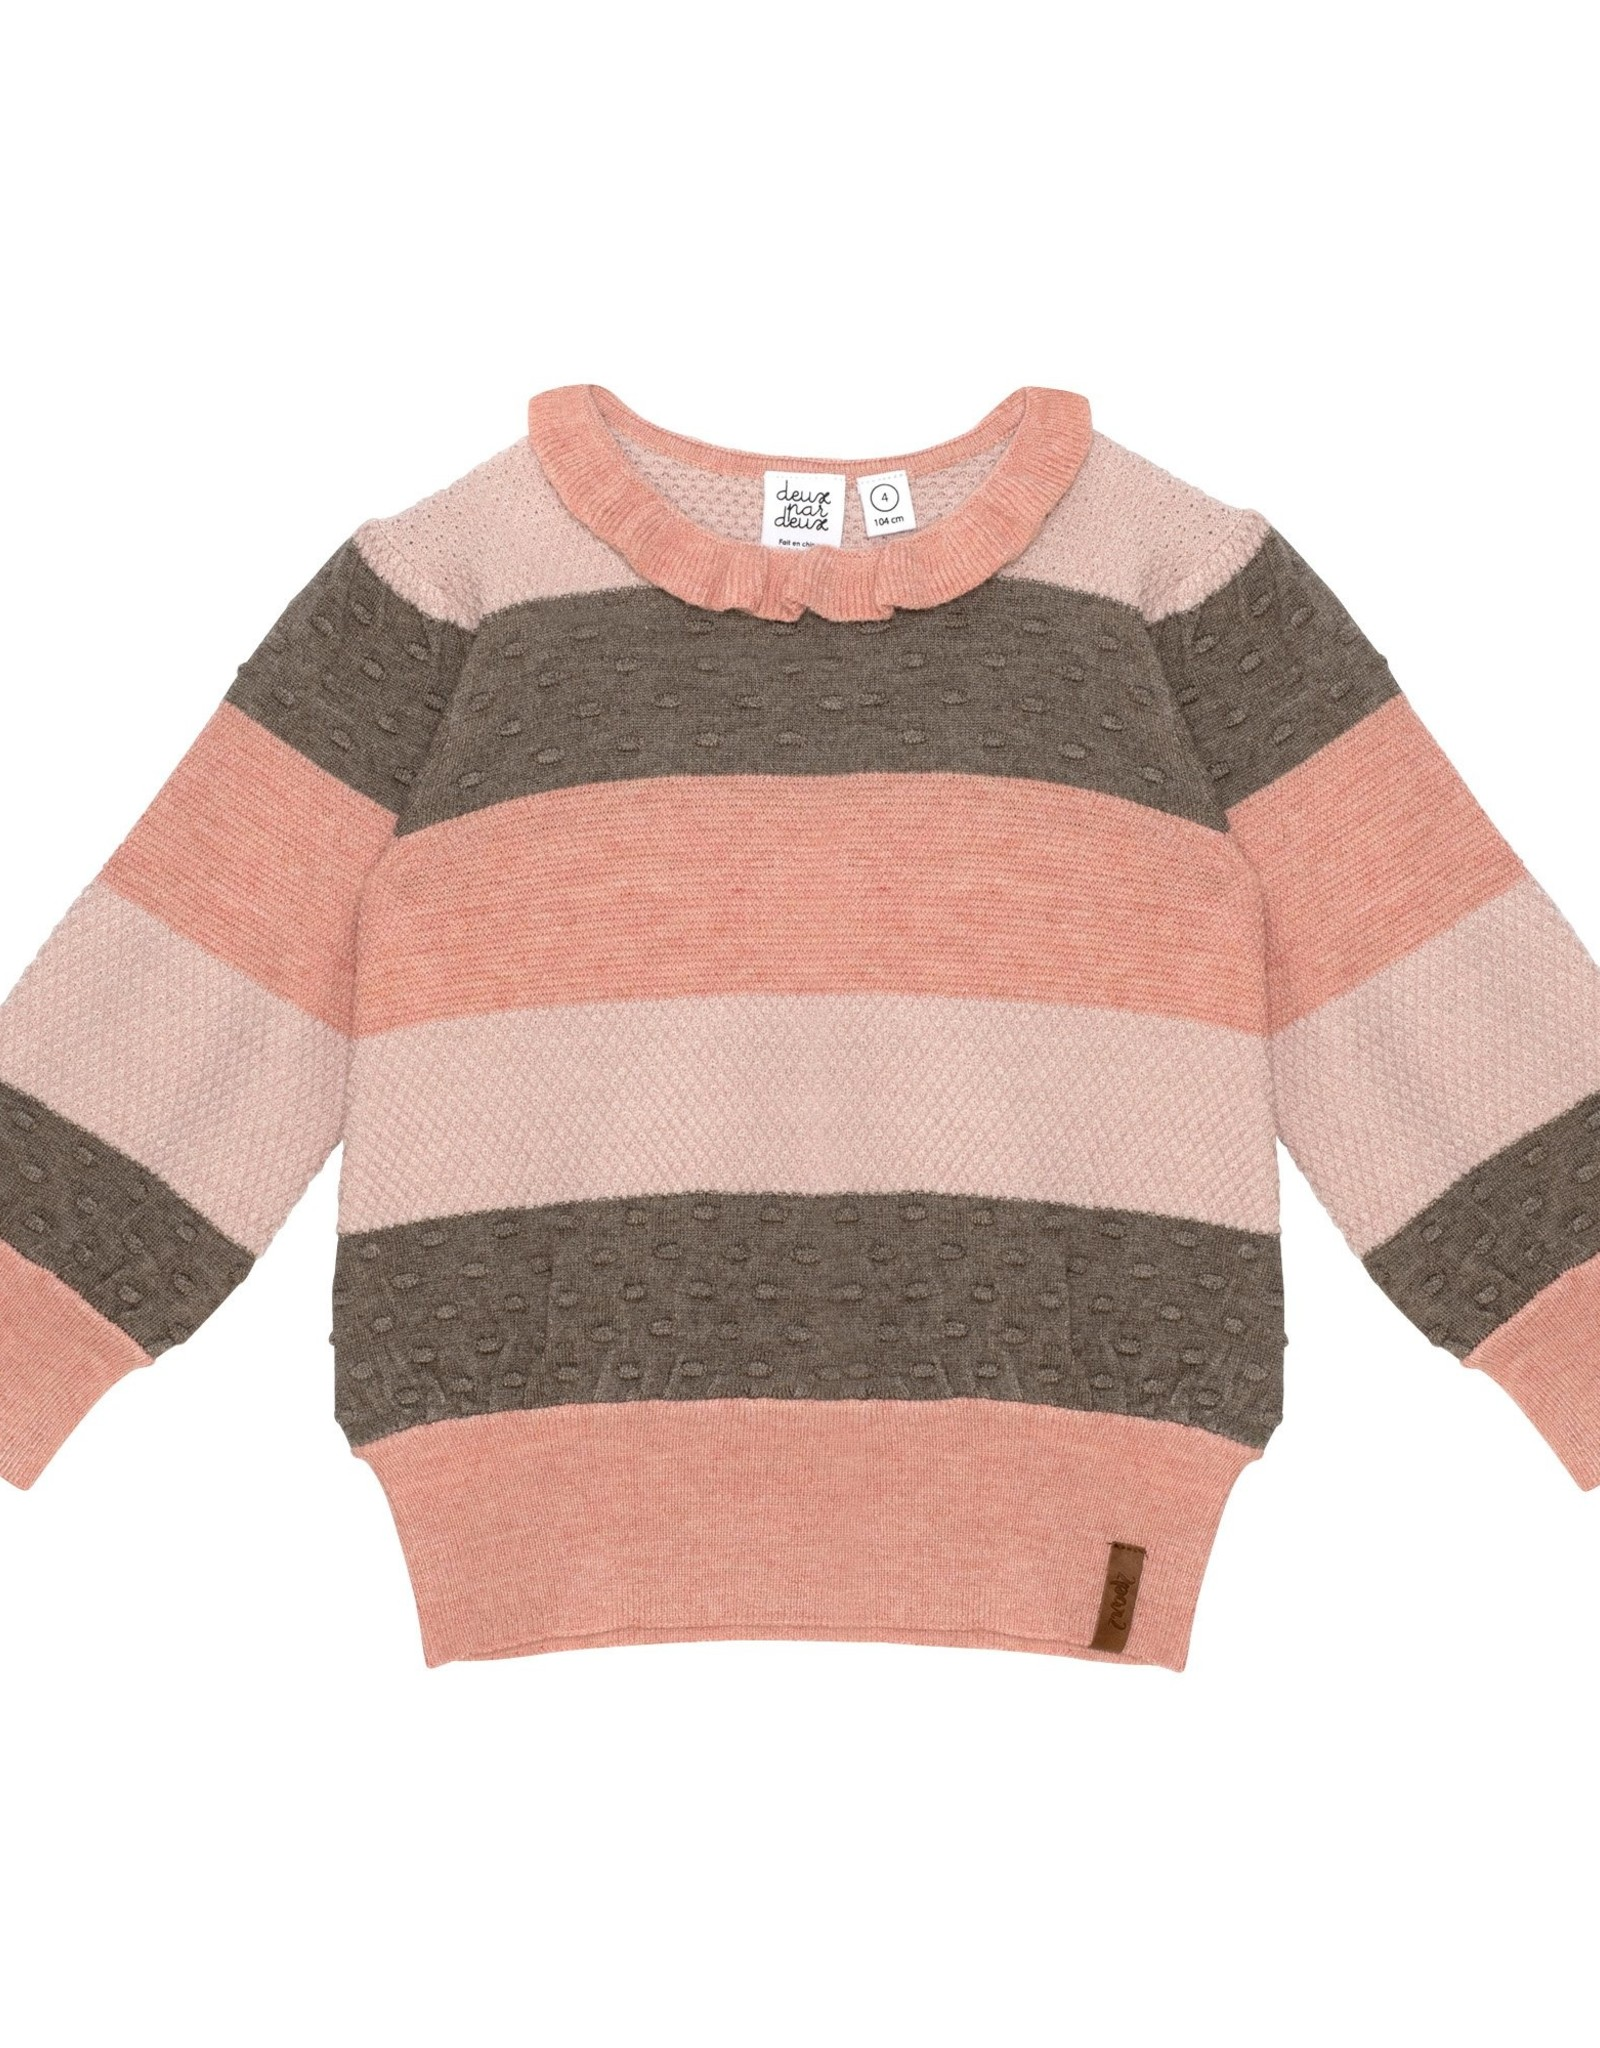 DeuxParDeux FA21 G Pink Striped Sweater